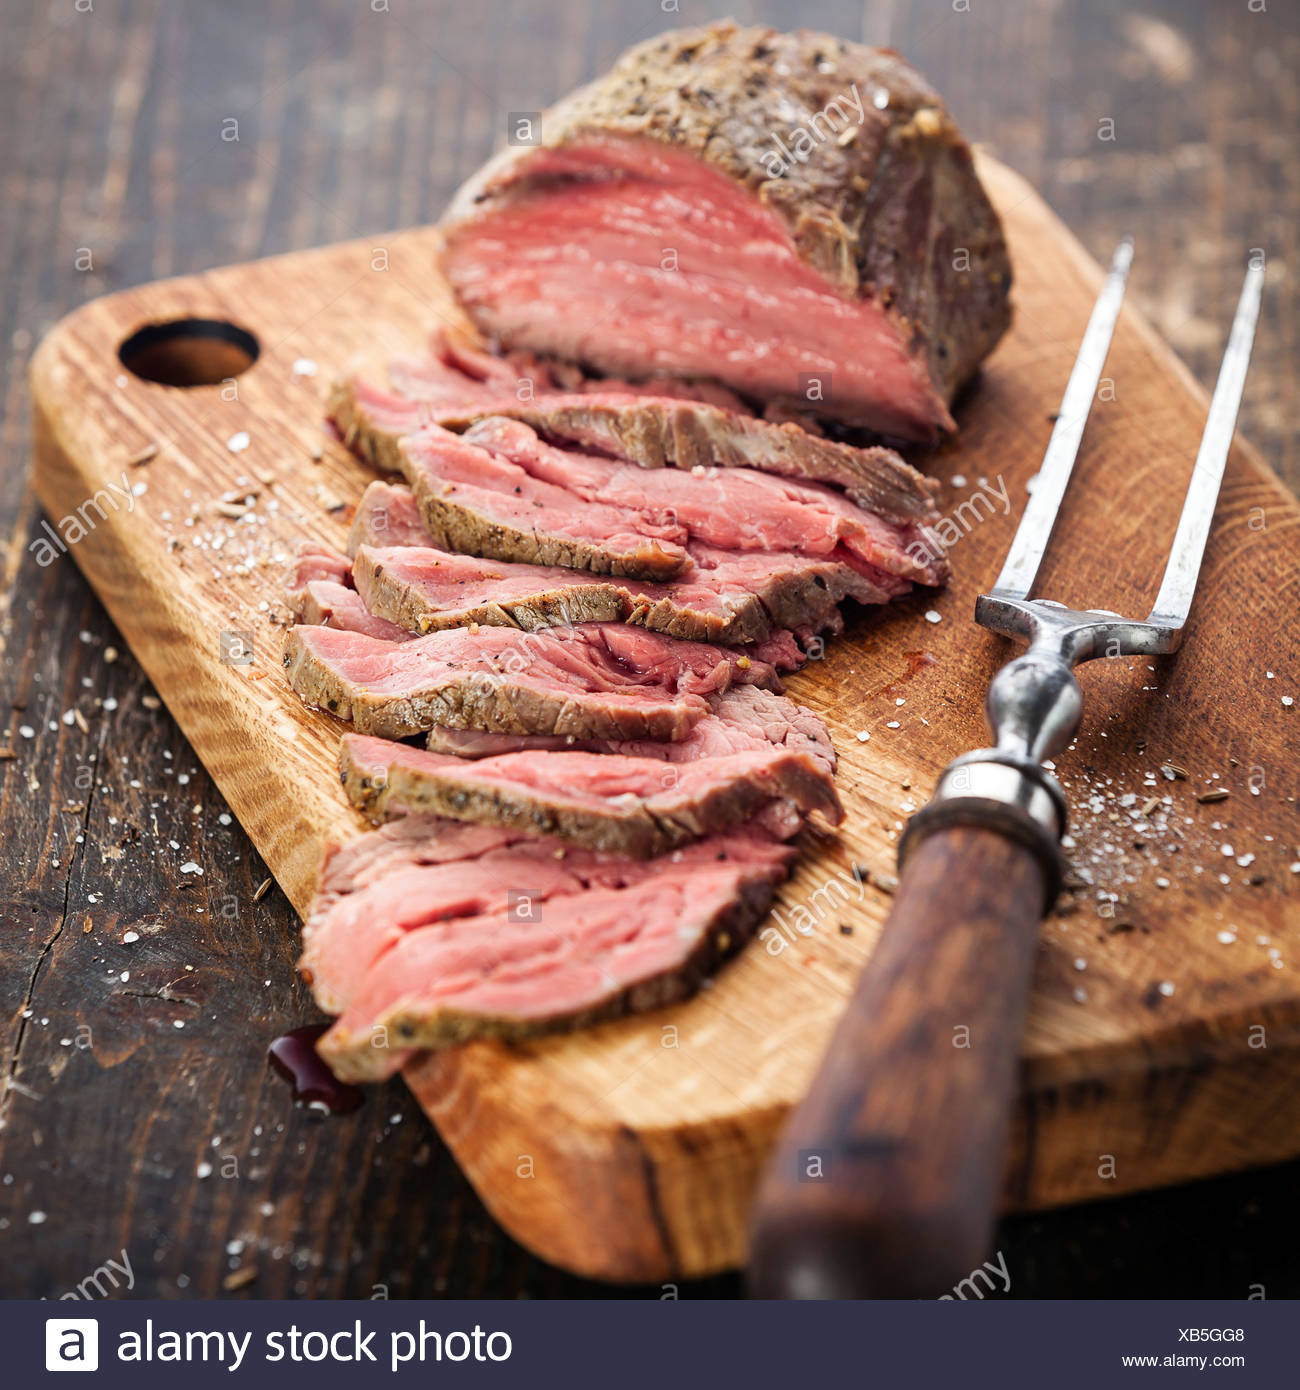 Roast beef on cutting board and meat fork - Stock Image